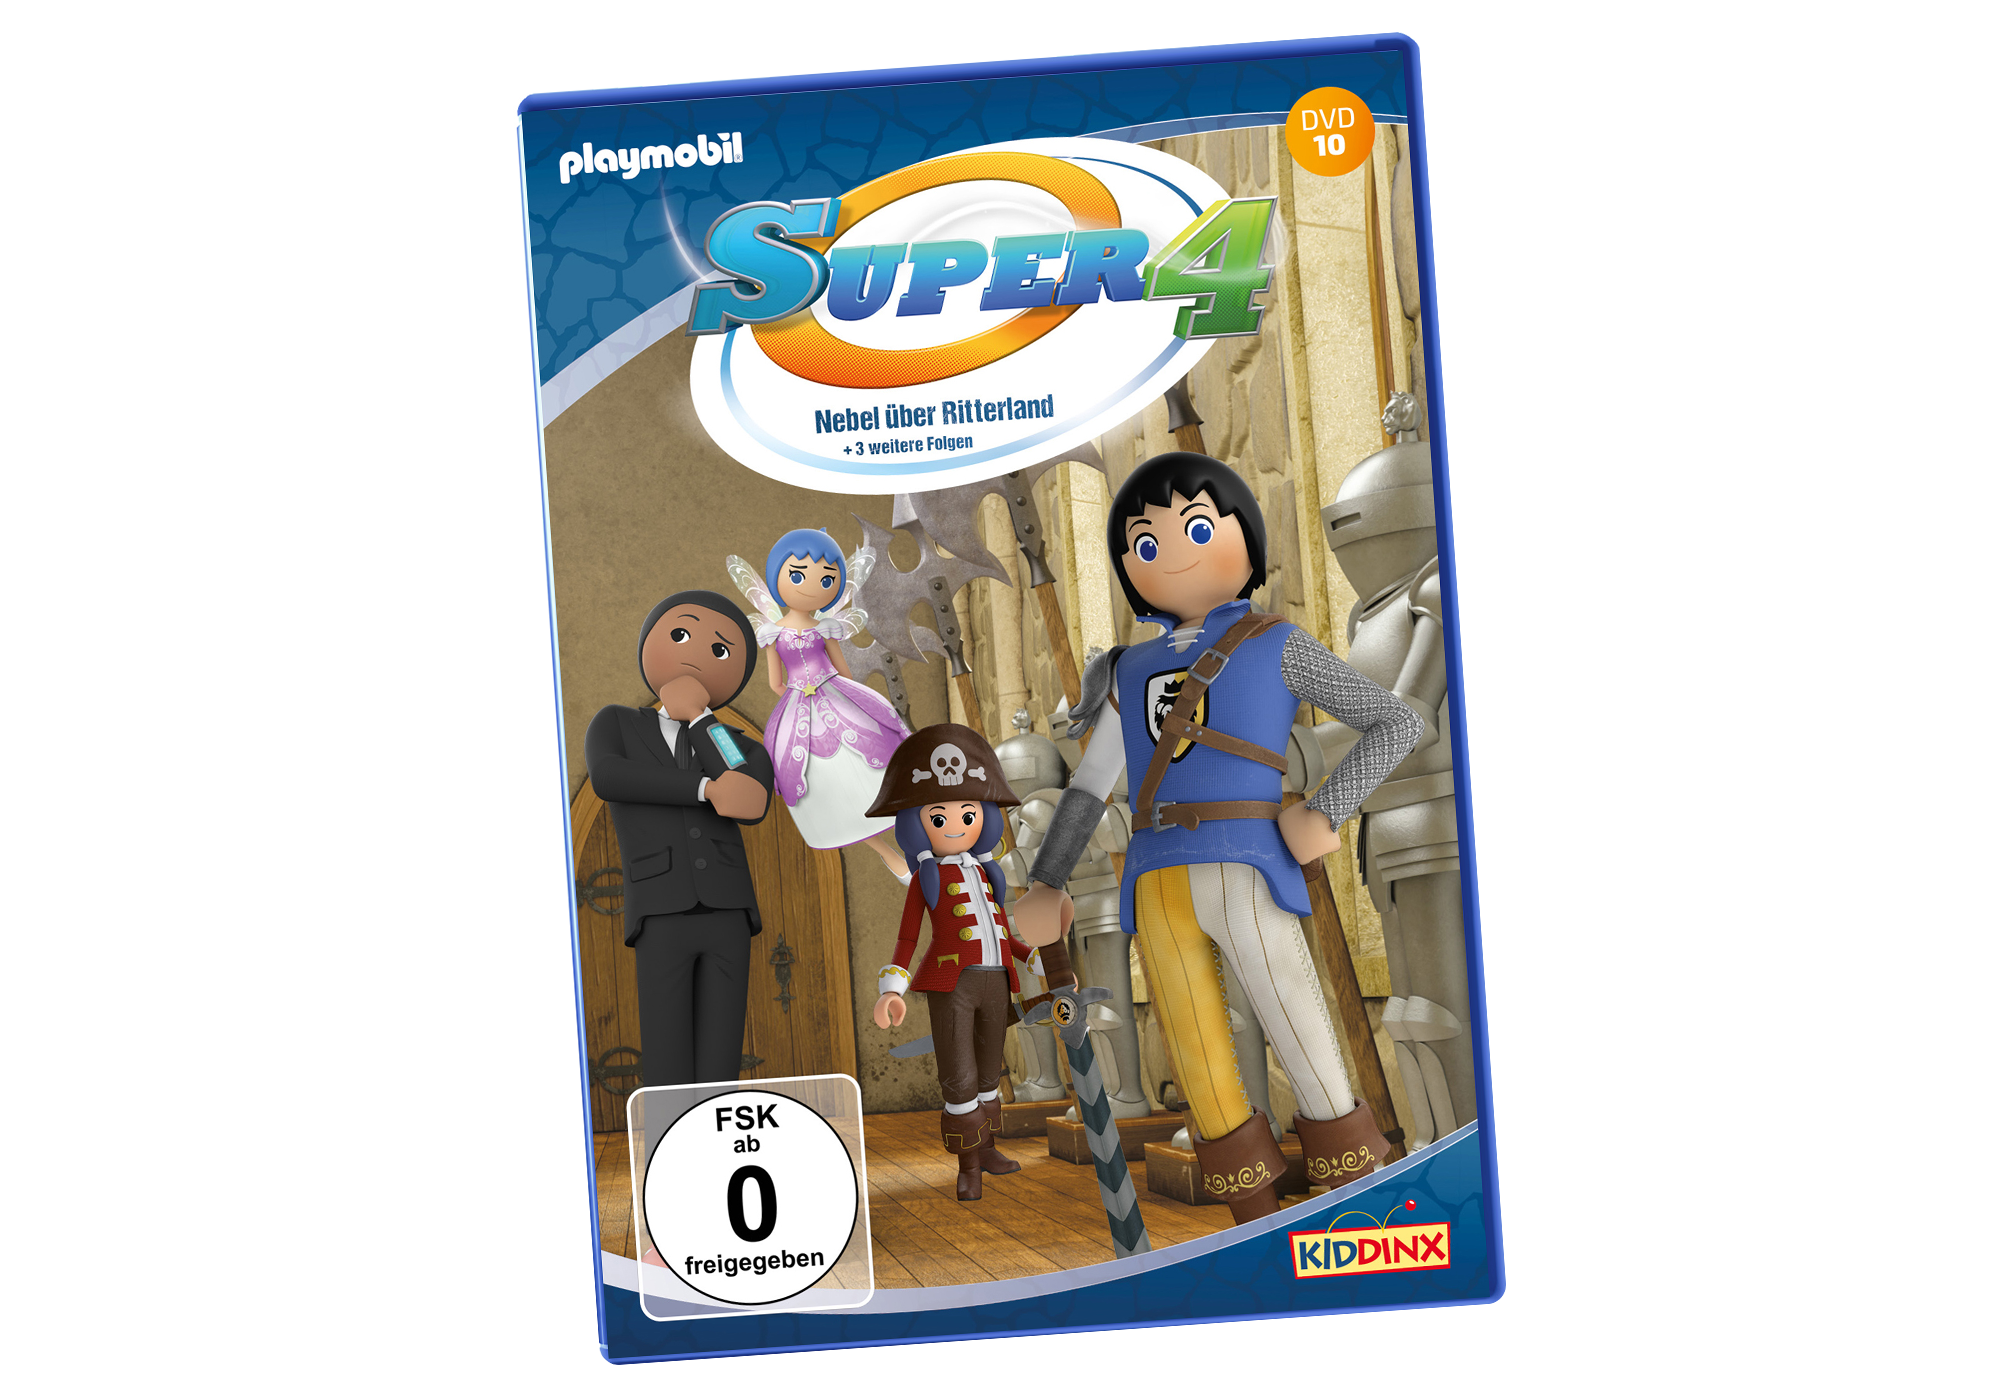 http://media.playmobil.com/i/playmobil/80028_product_detail